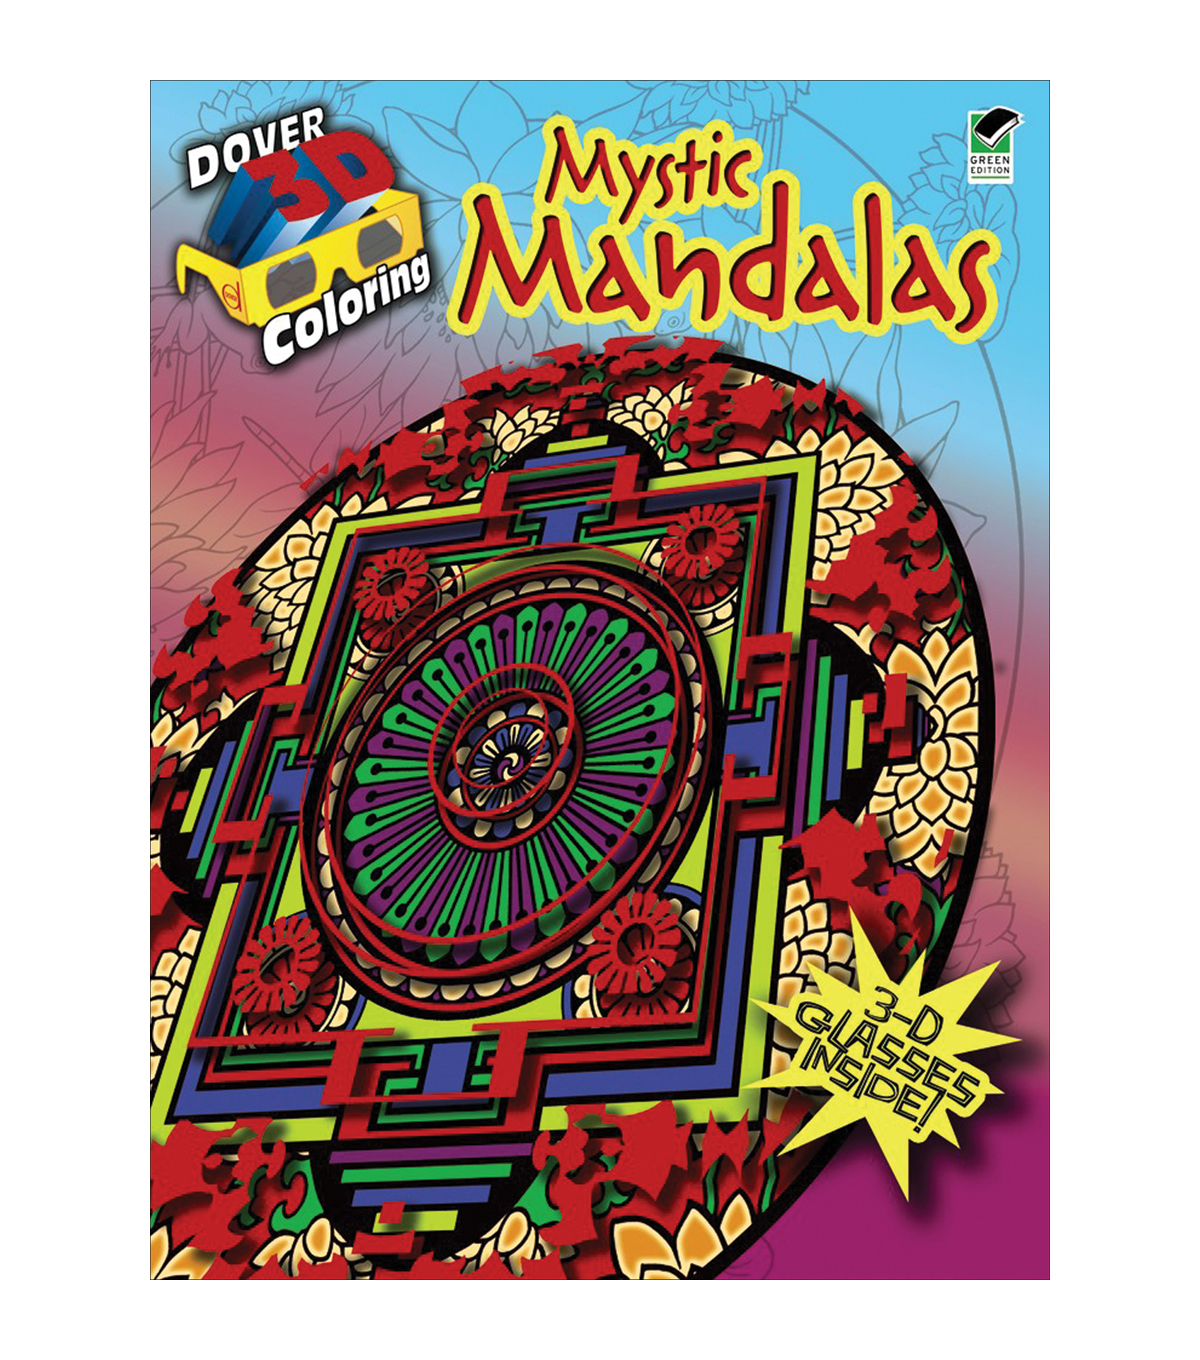 adult coloring book dover publications mystic mandalas 3d - Dover Coloring Books For Adults